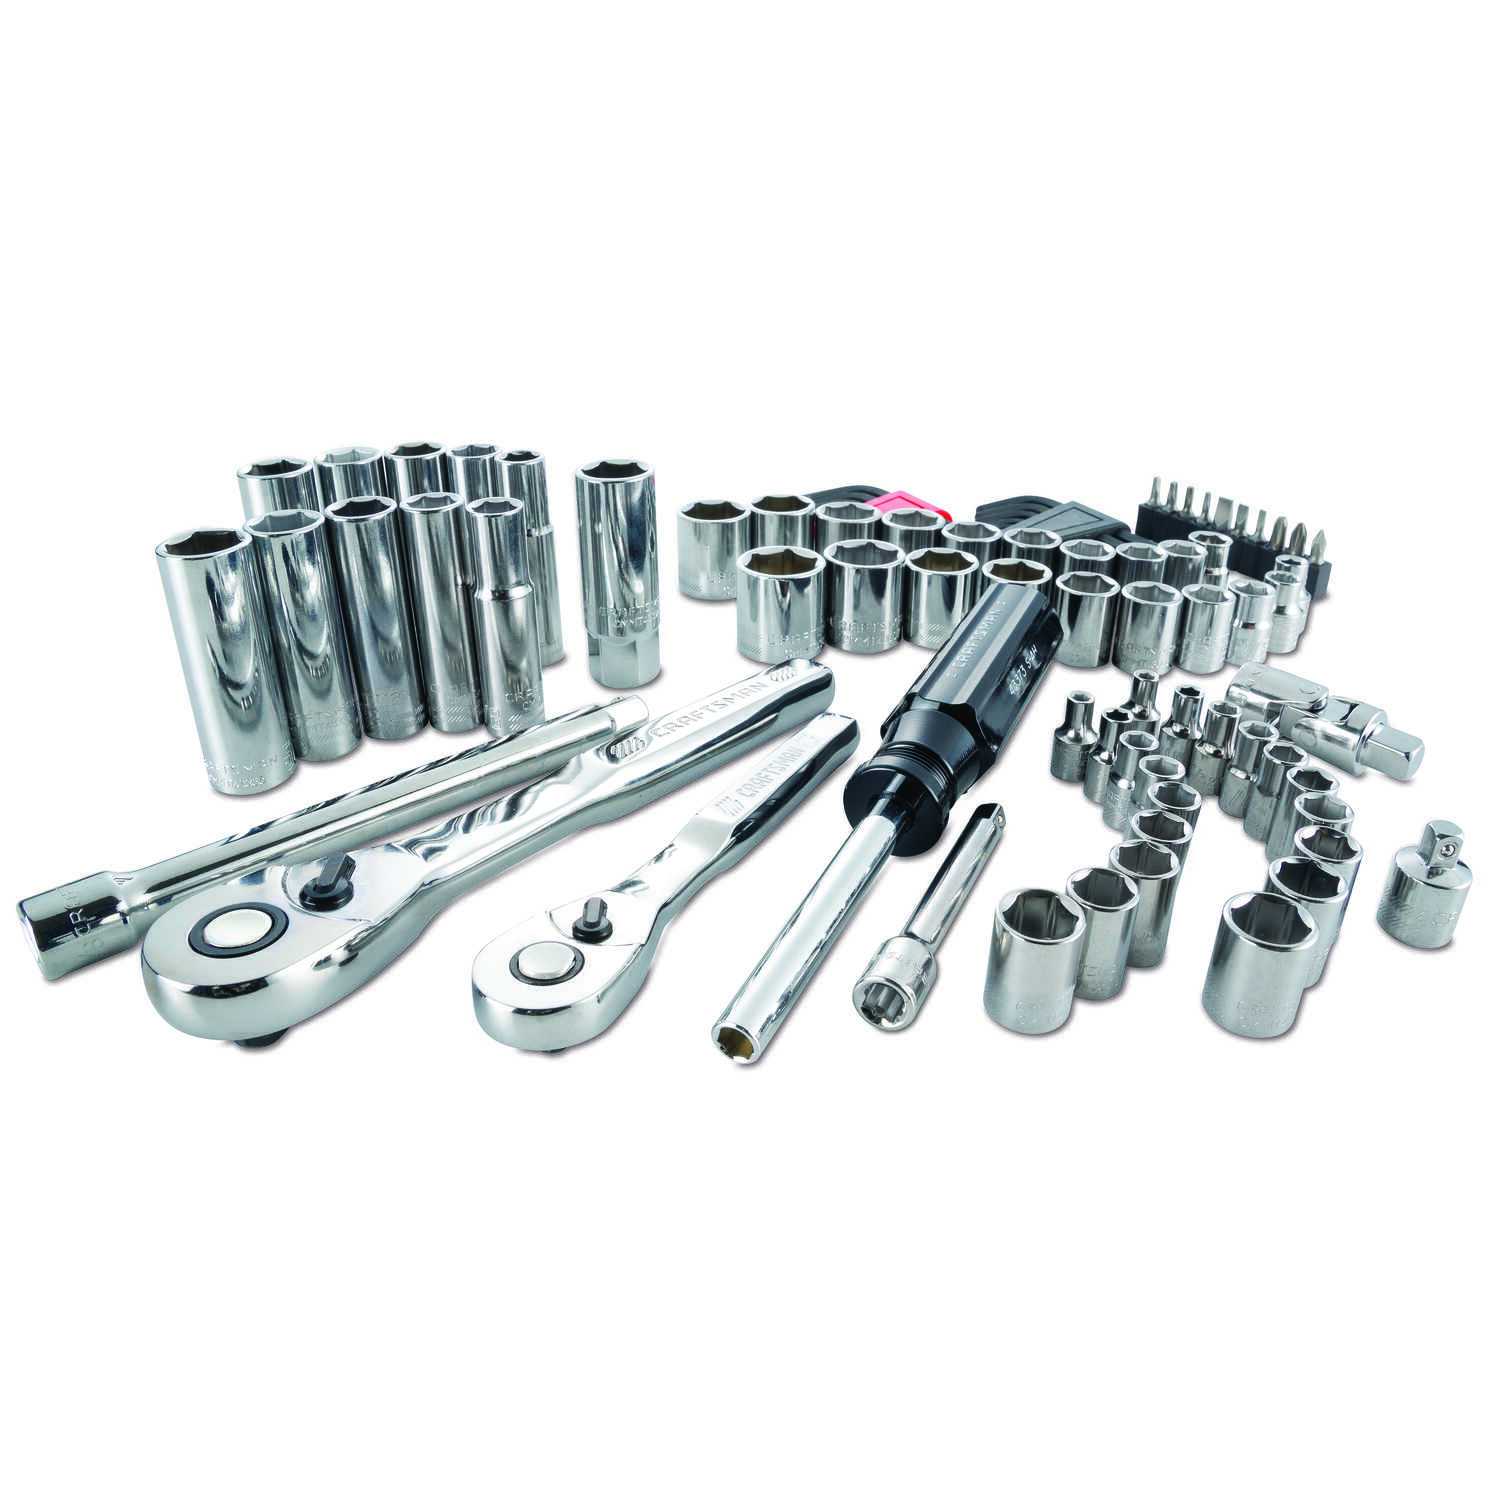 Craftsman  1/4 and 3/8 in. drive  Metric and SAE  6 Point Driver Mechanic's Tool Set  83 pc.